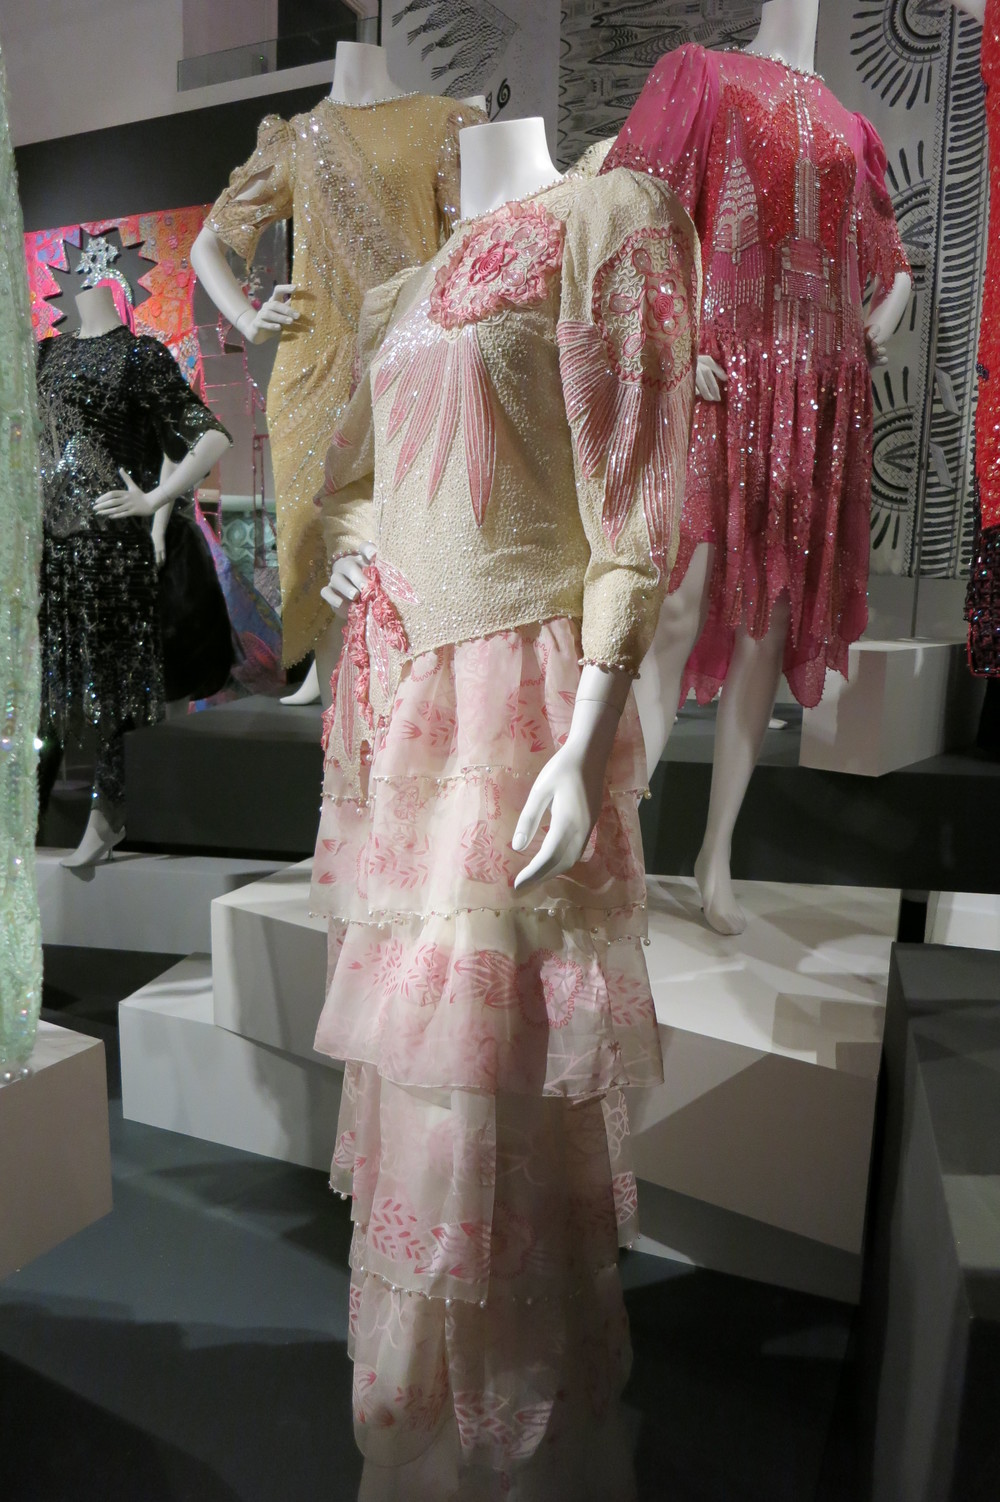 Zandra Rhodes exhibition at the Fashion & Textile Museum, Bermondsey, London 2013